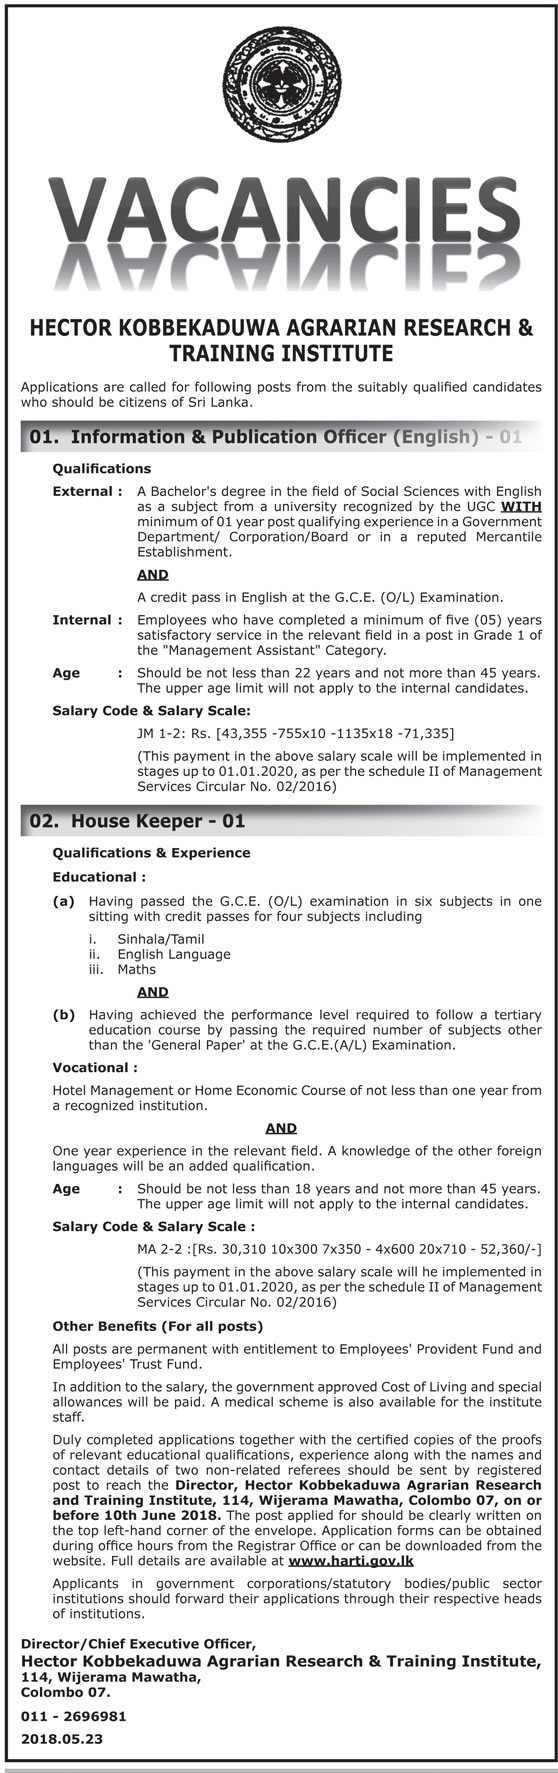 House Keeper, Information & Publication Officer Vacancy